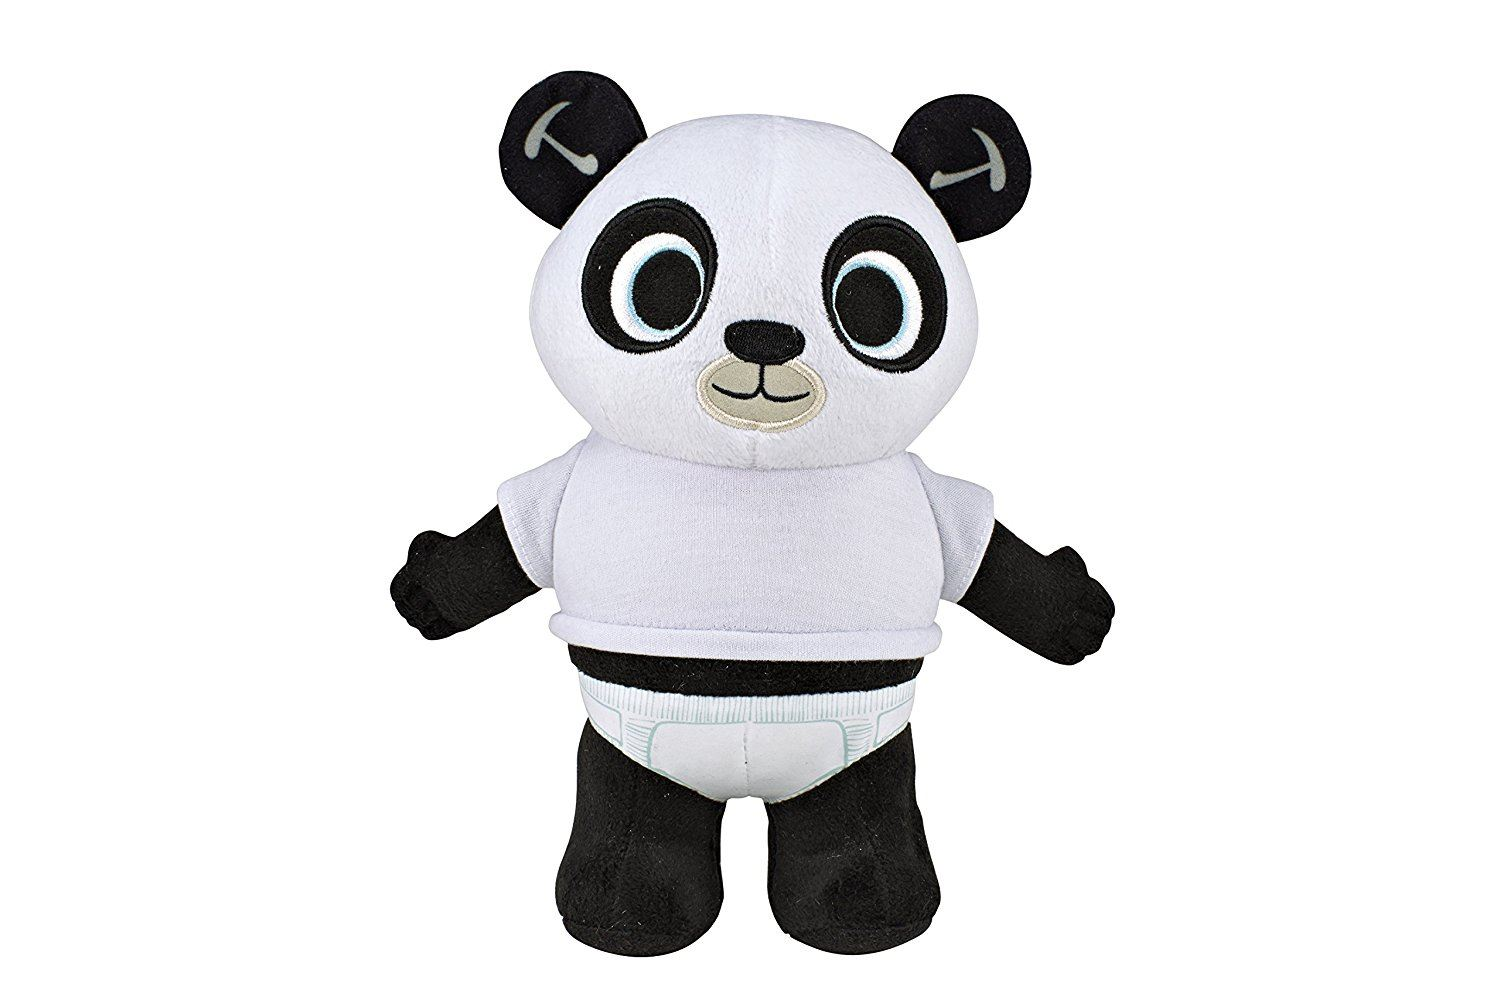 Bing-Talking-Plush-Bing-Sula-Pando-Doll-Plush-Toy 縮圖 5